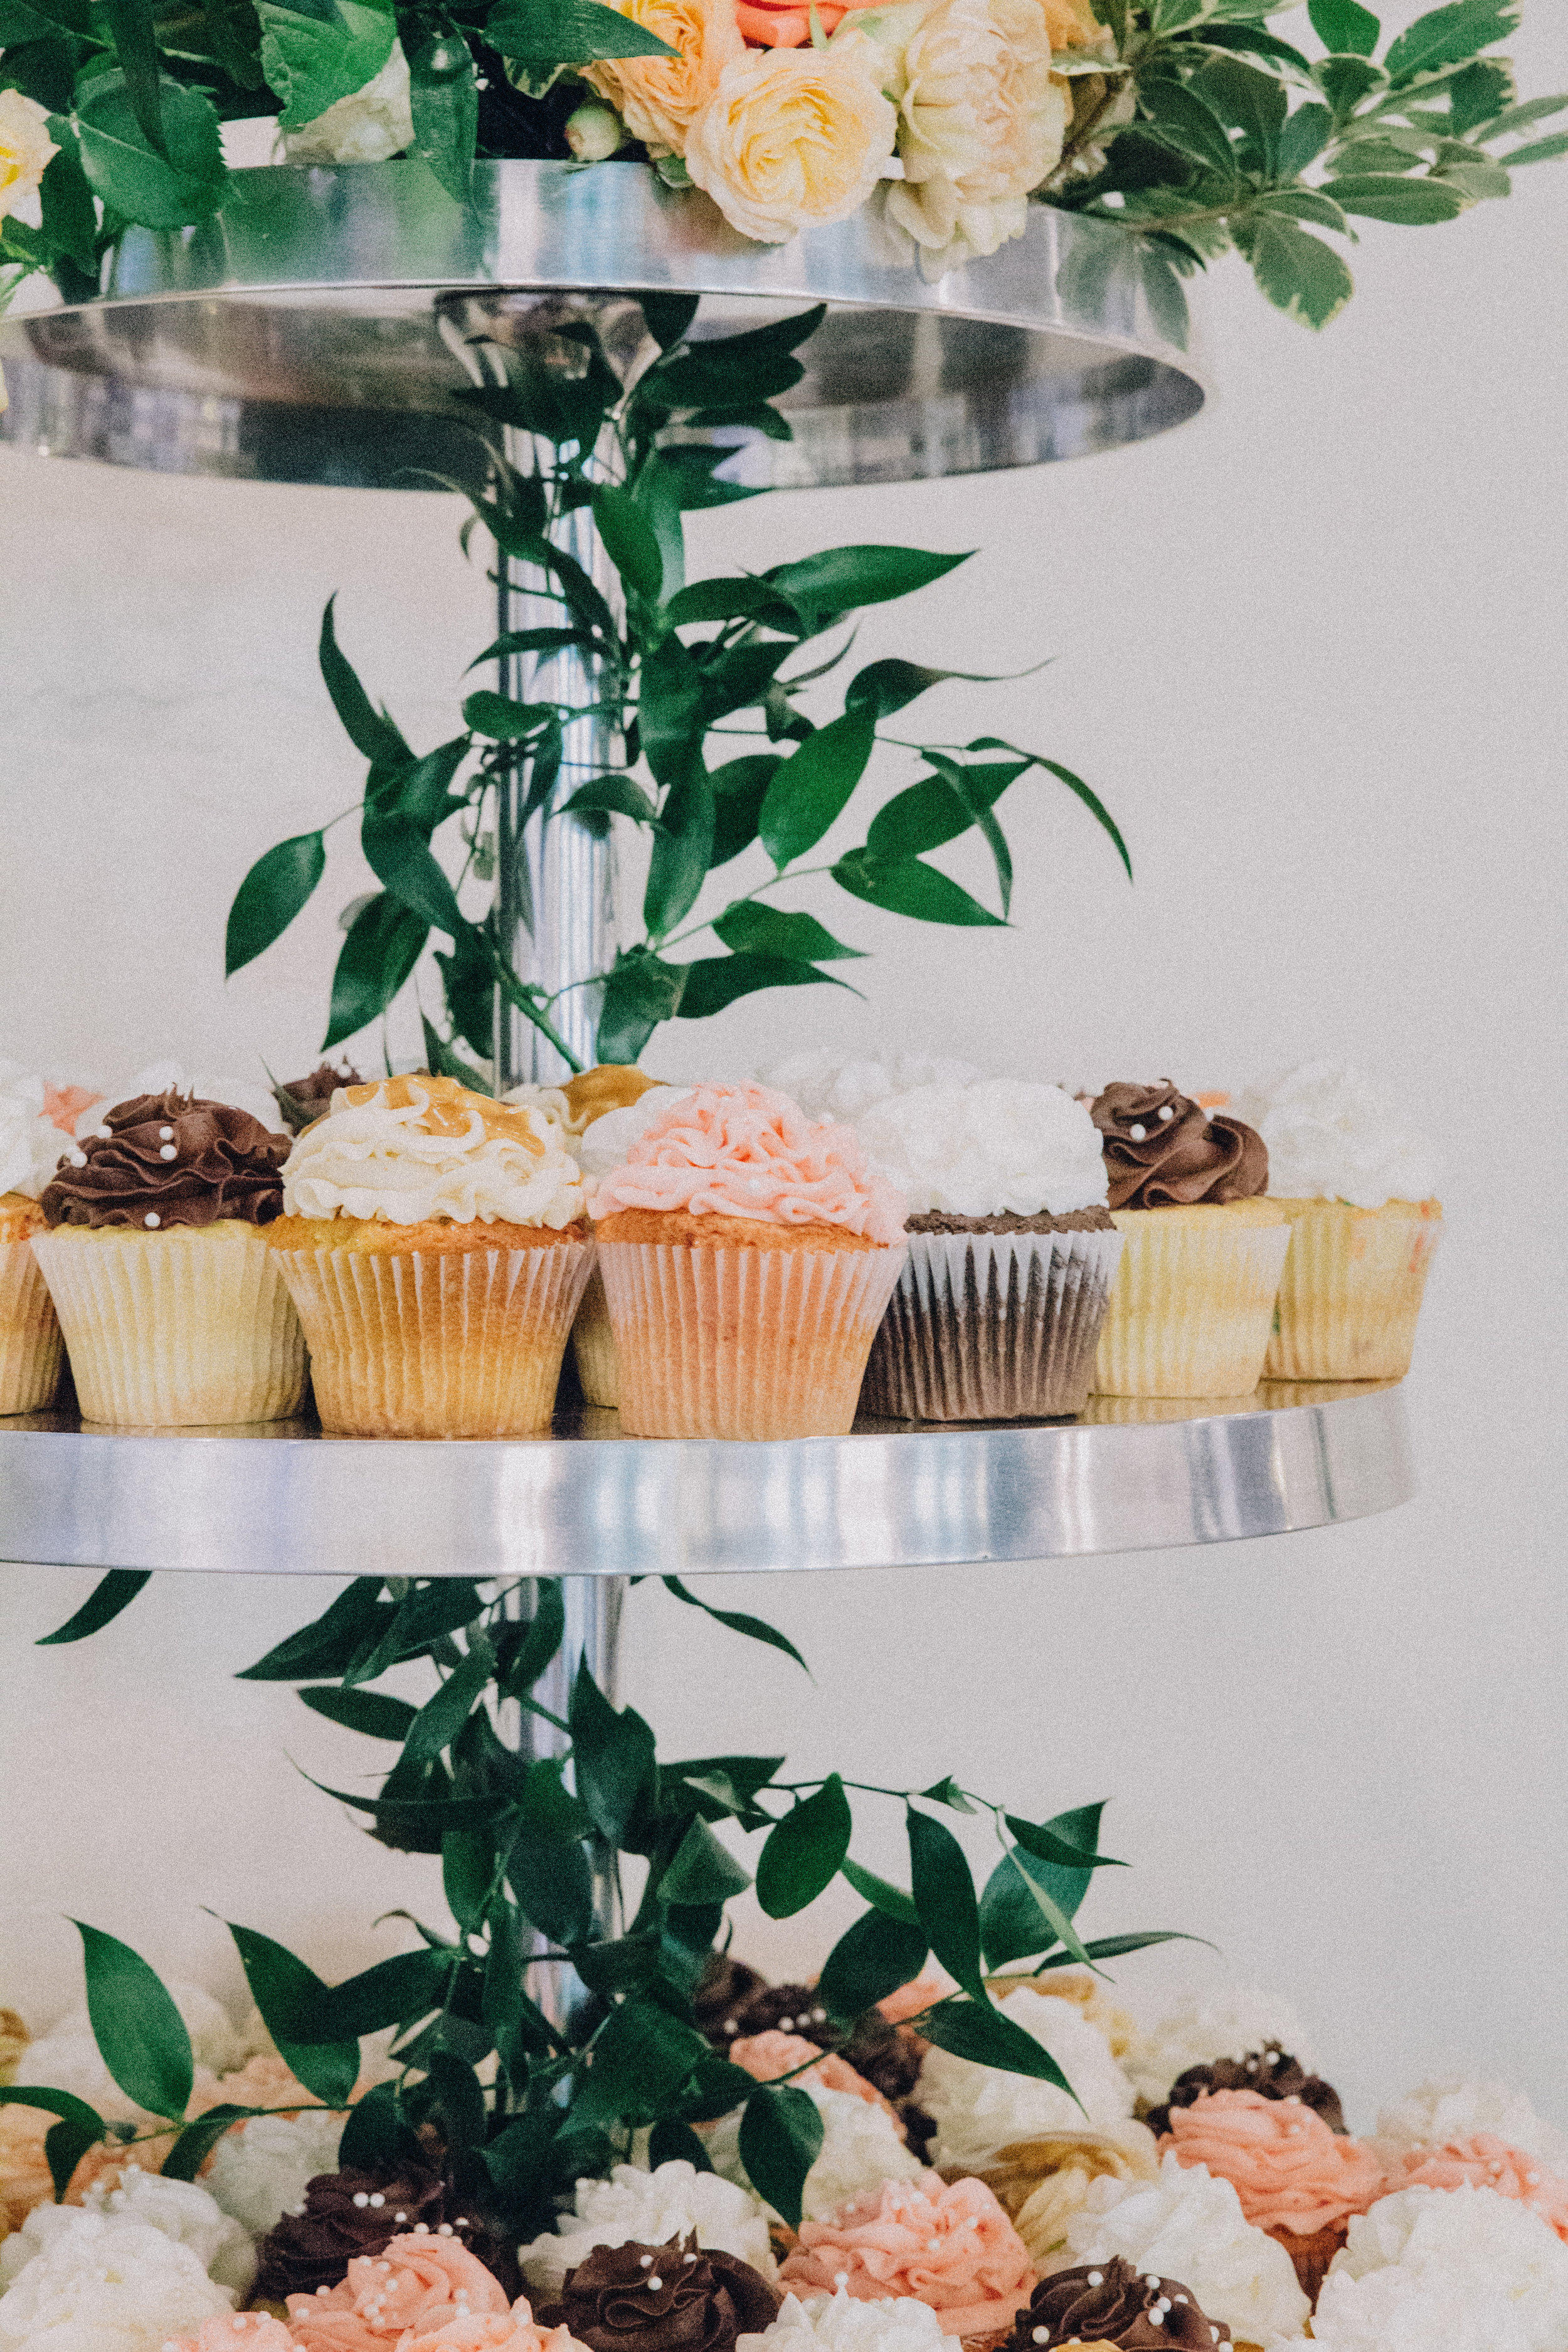 Cupcakes for All